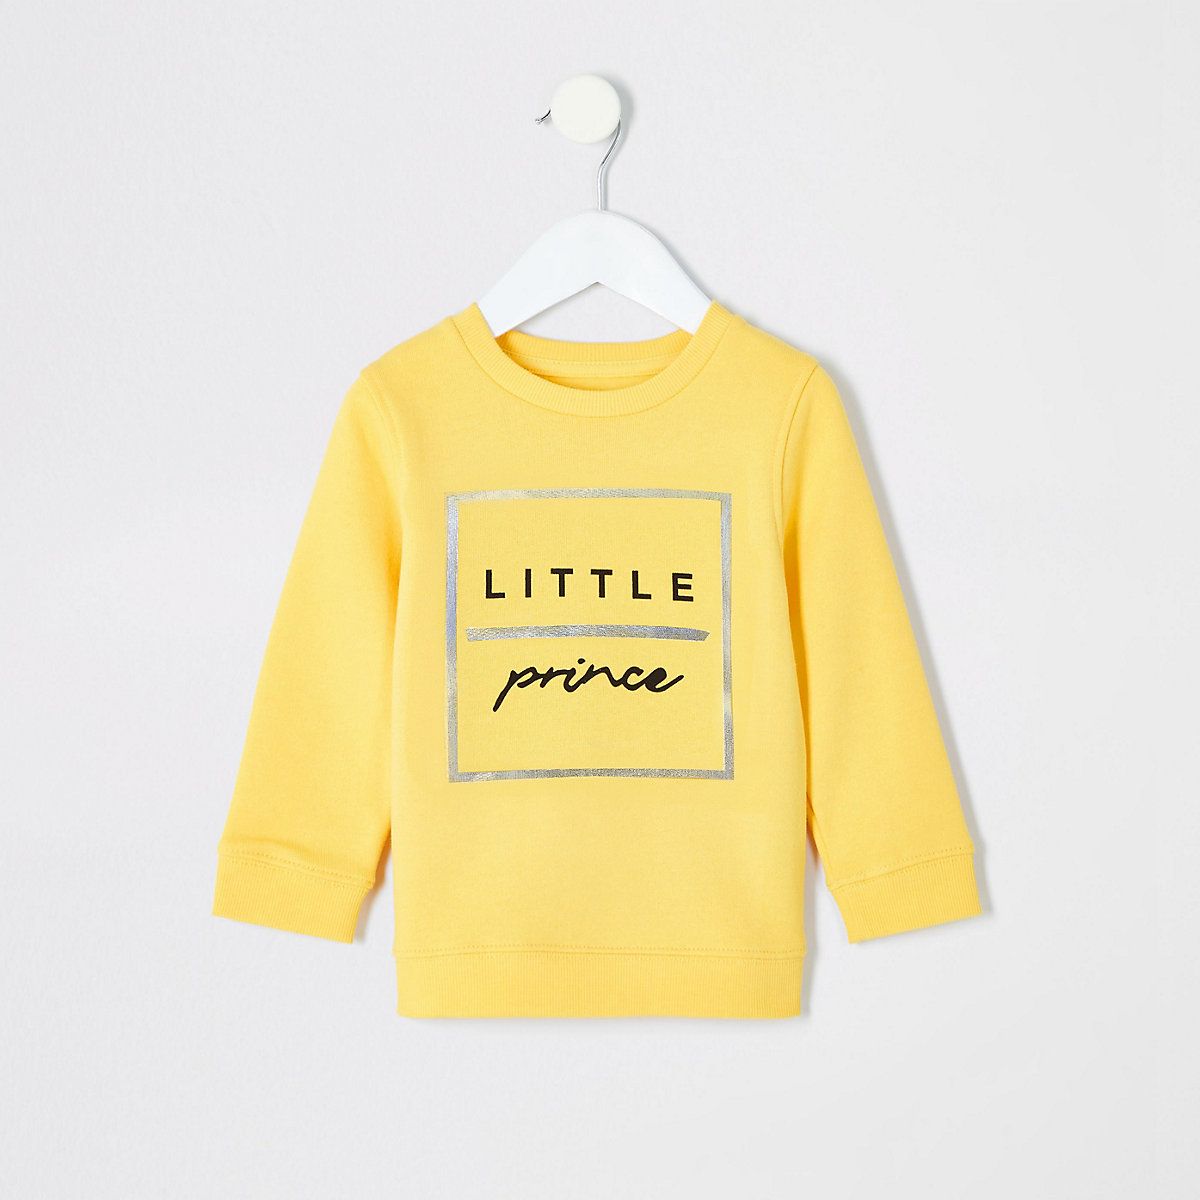 Mini boys yellow 'Little prince' sweatshirt